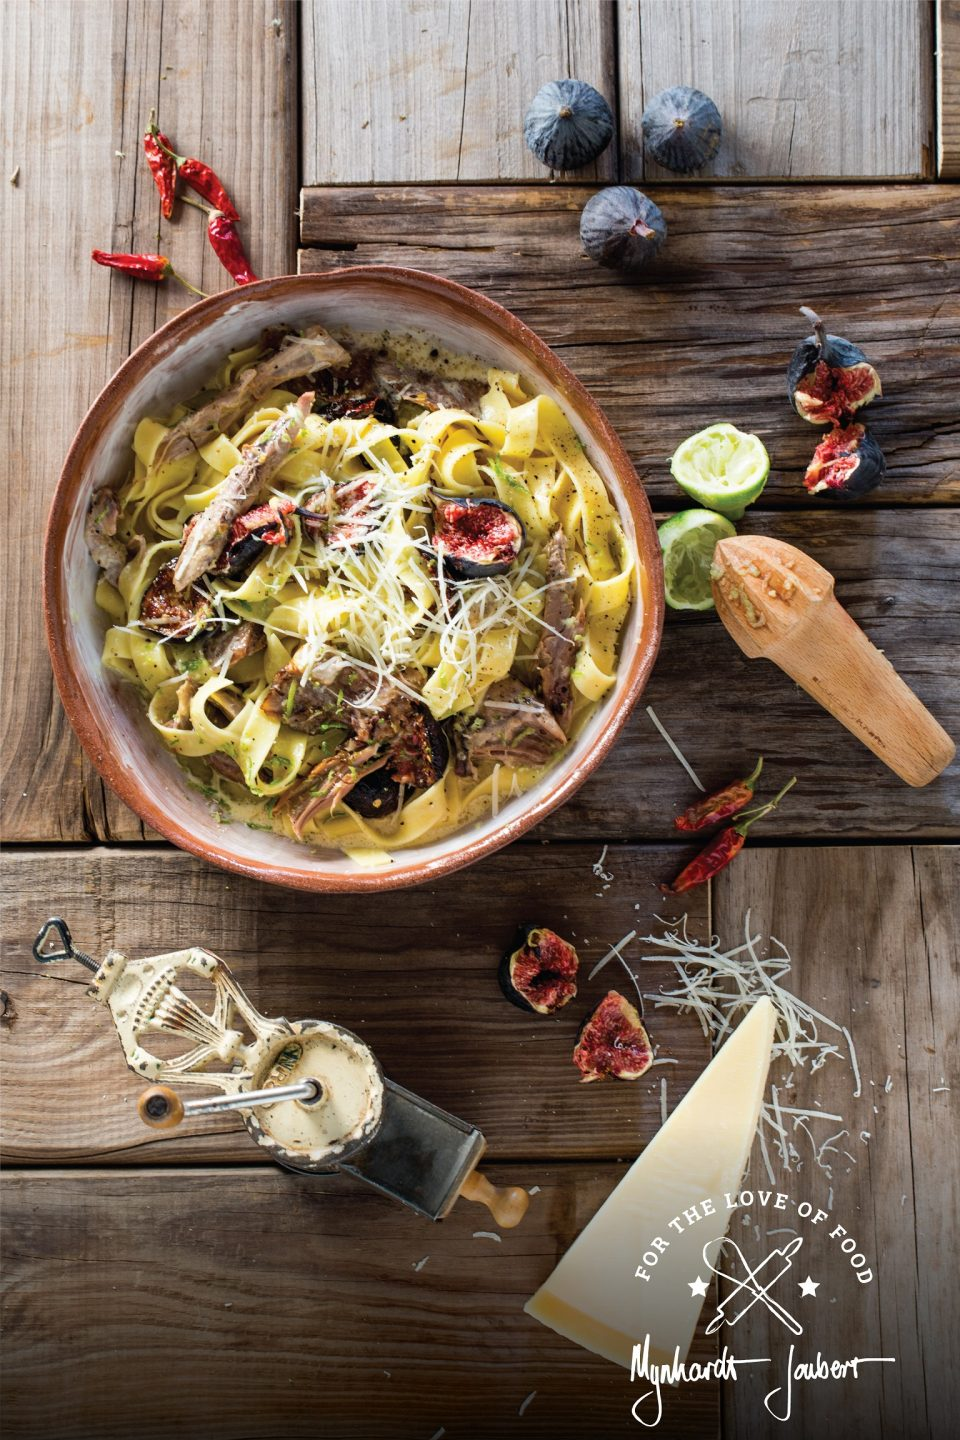 Free range lamb pasta 960x1440 - Elated Easter celebrations with Chef Mynhardt